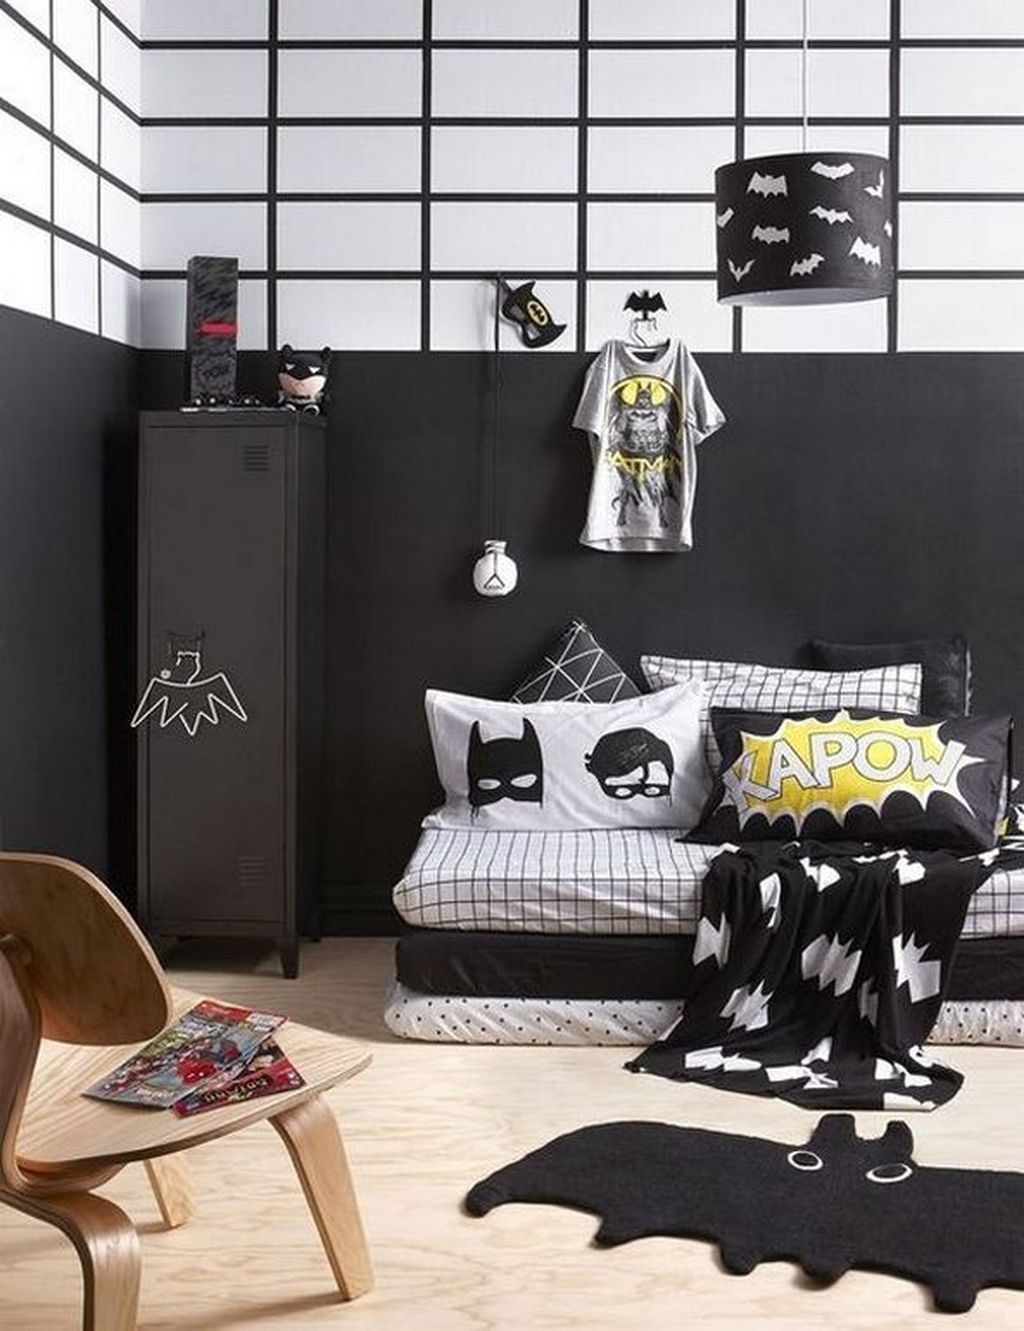 Fascinating Superhero Theme Bedroom Decor Ideas 23